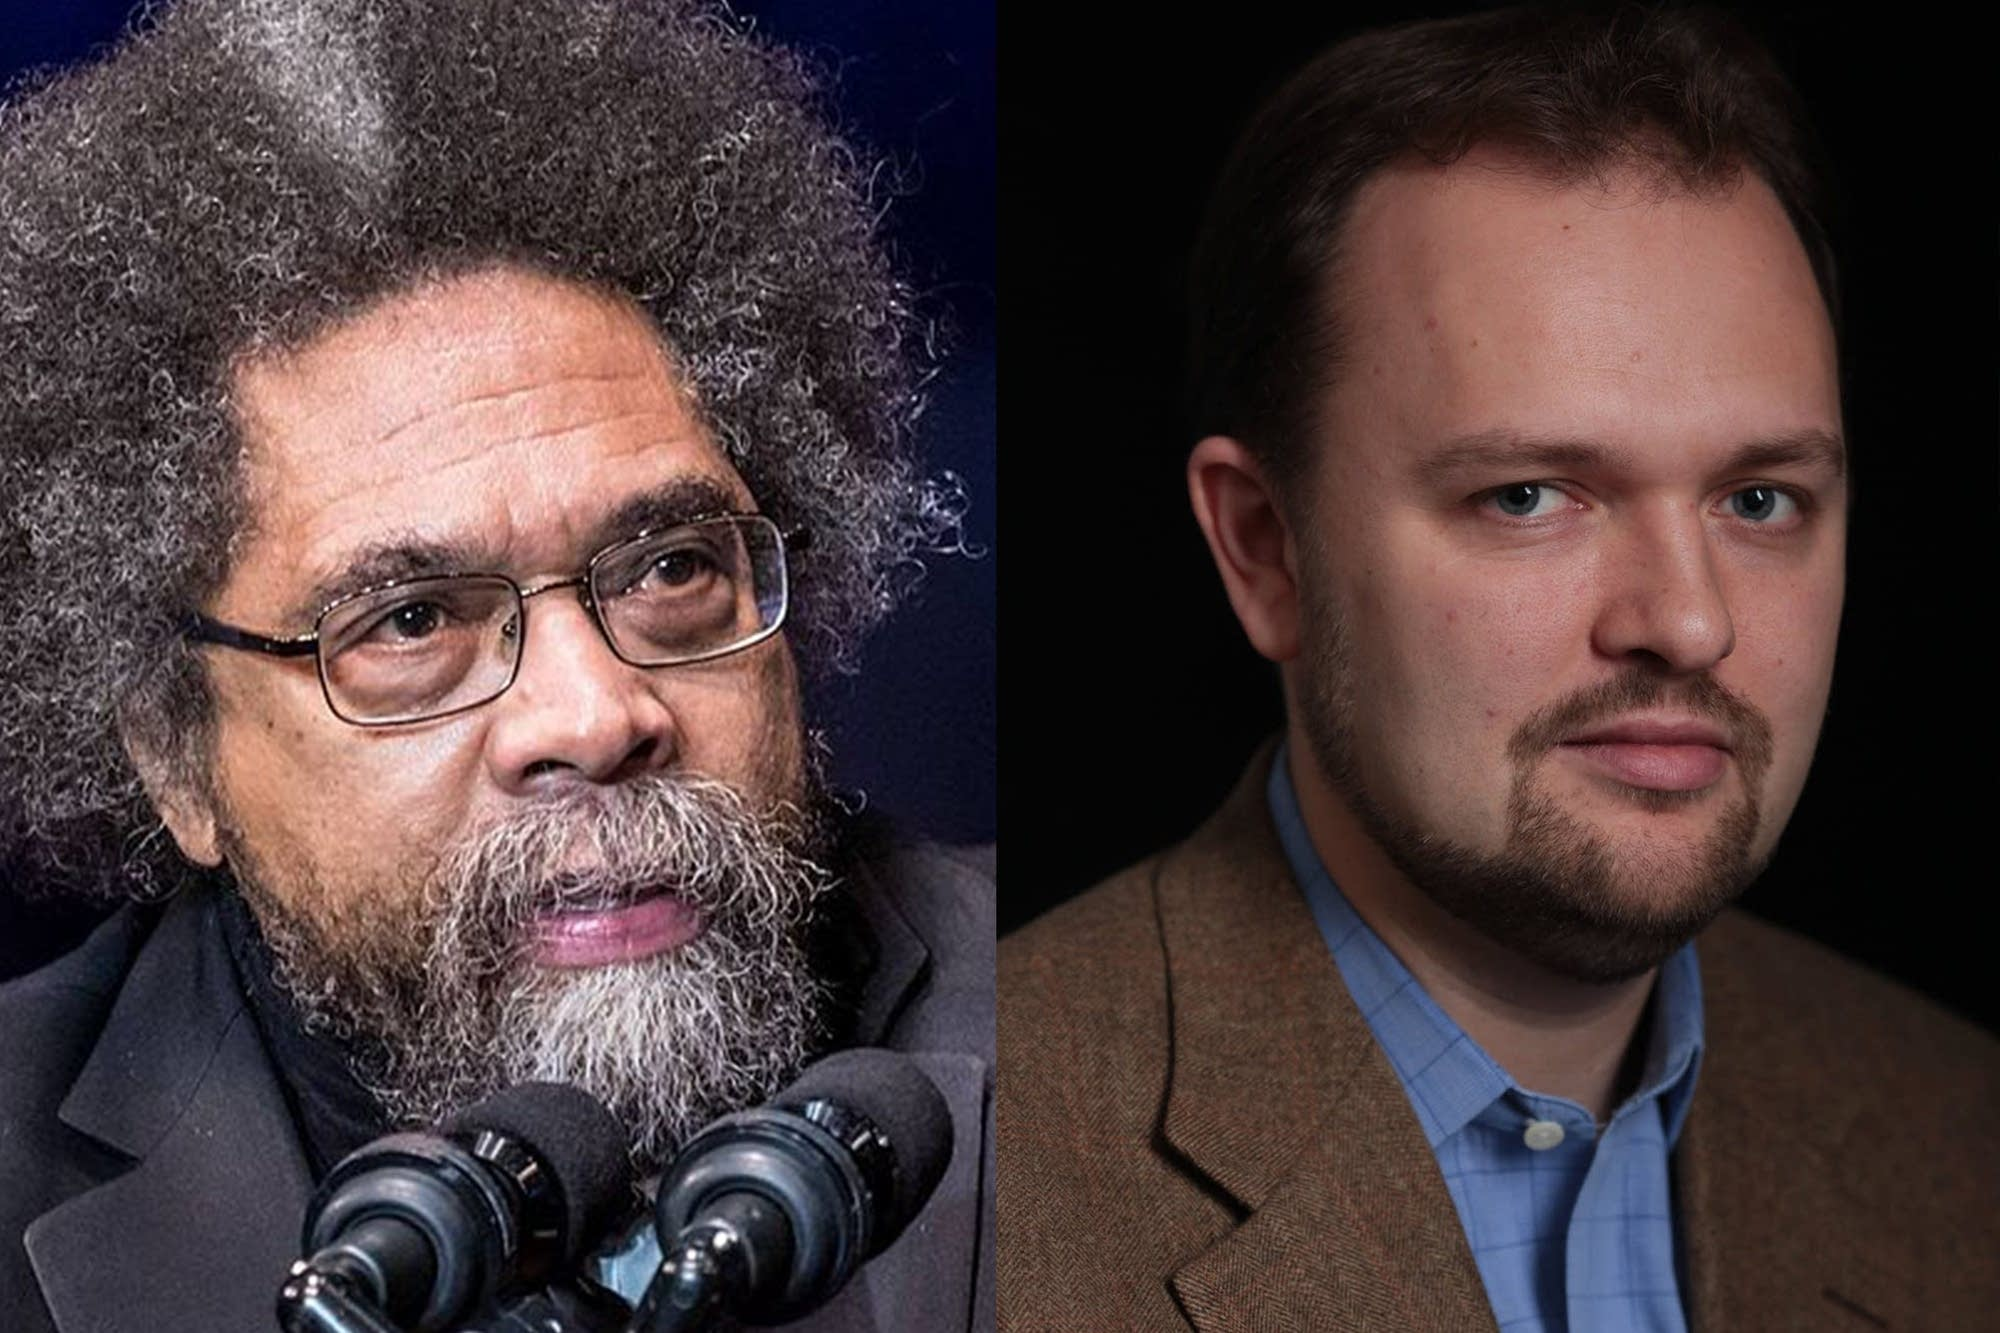 Cornel West and Ross Douthat